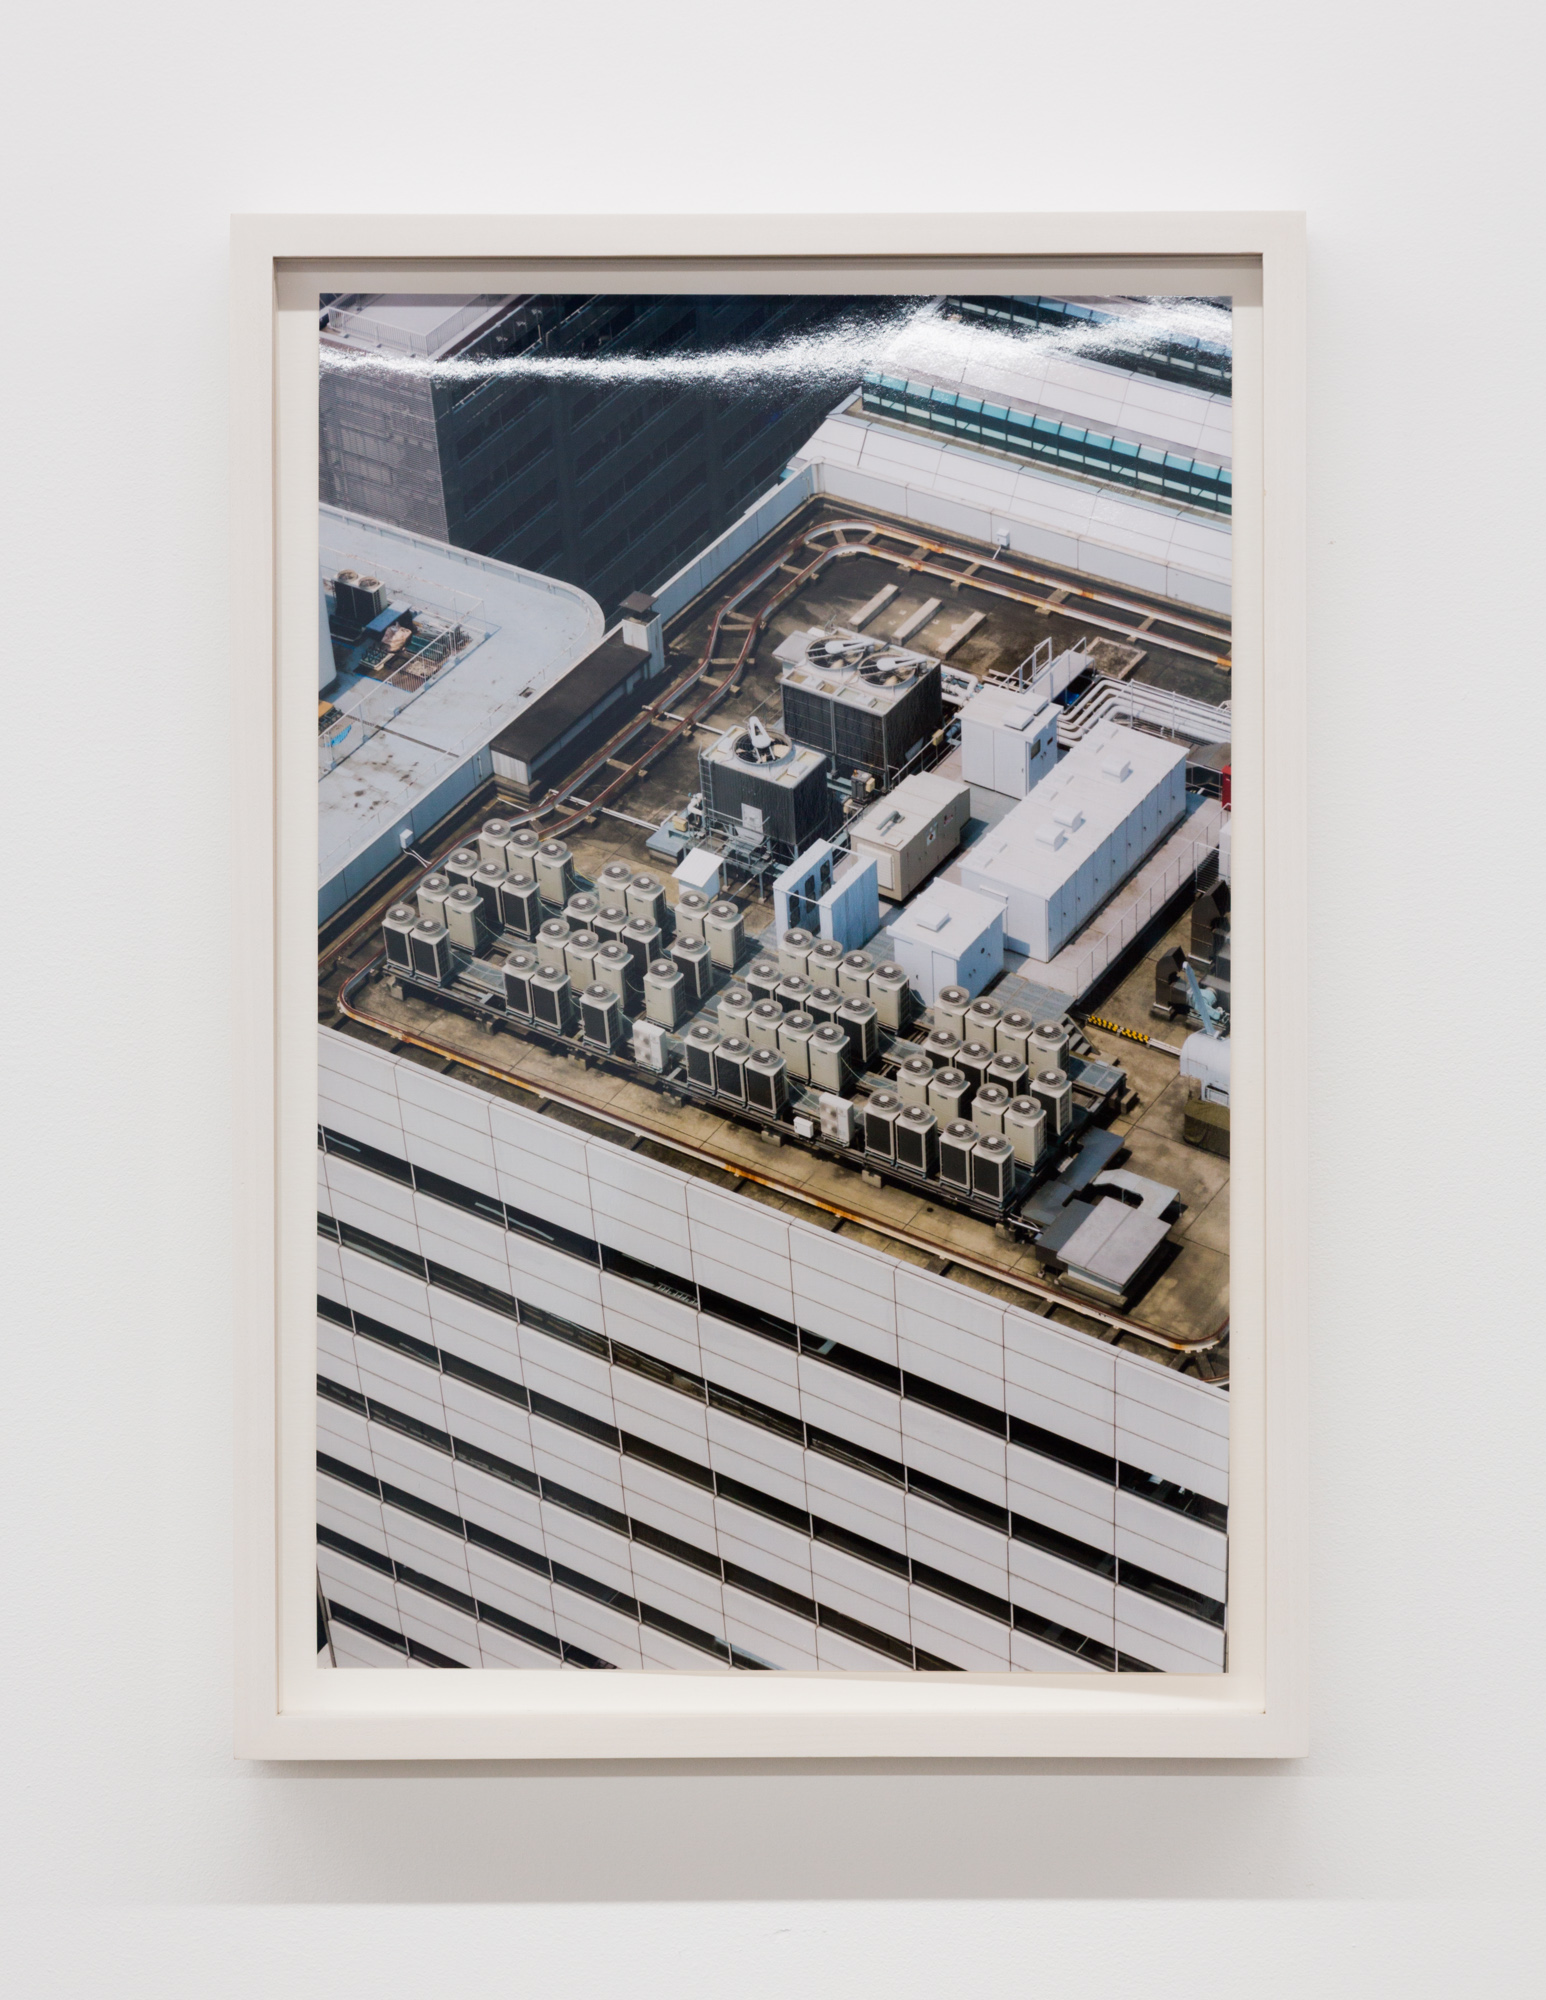 Untitled (Shibuya III), Tokyo, Japan,  2017, Chromira print on Glossy Fujicolor Crystal Archive Paper, Unframed: 14 x 9 1/3 inches, Framed: 15 3⁄4 x 12 5/8 x 1 3/8 inches